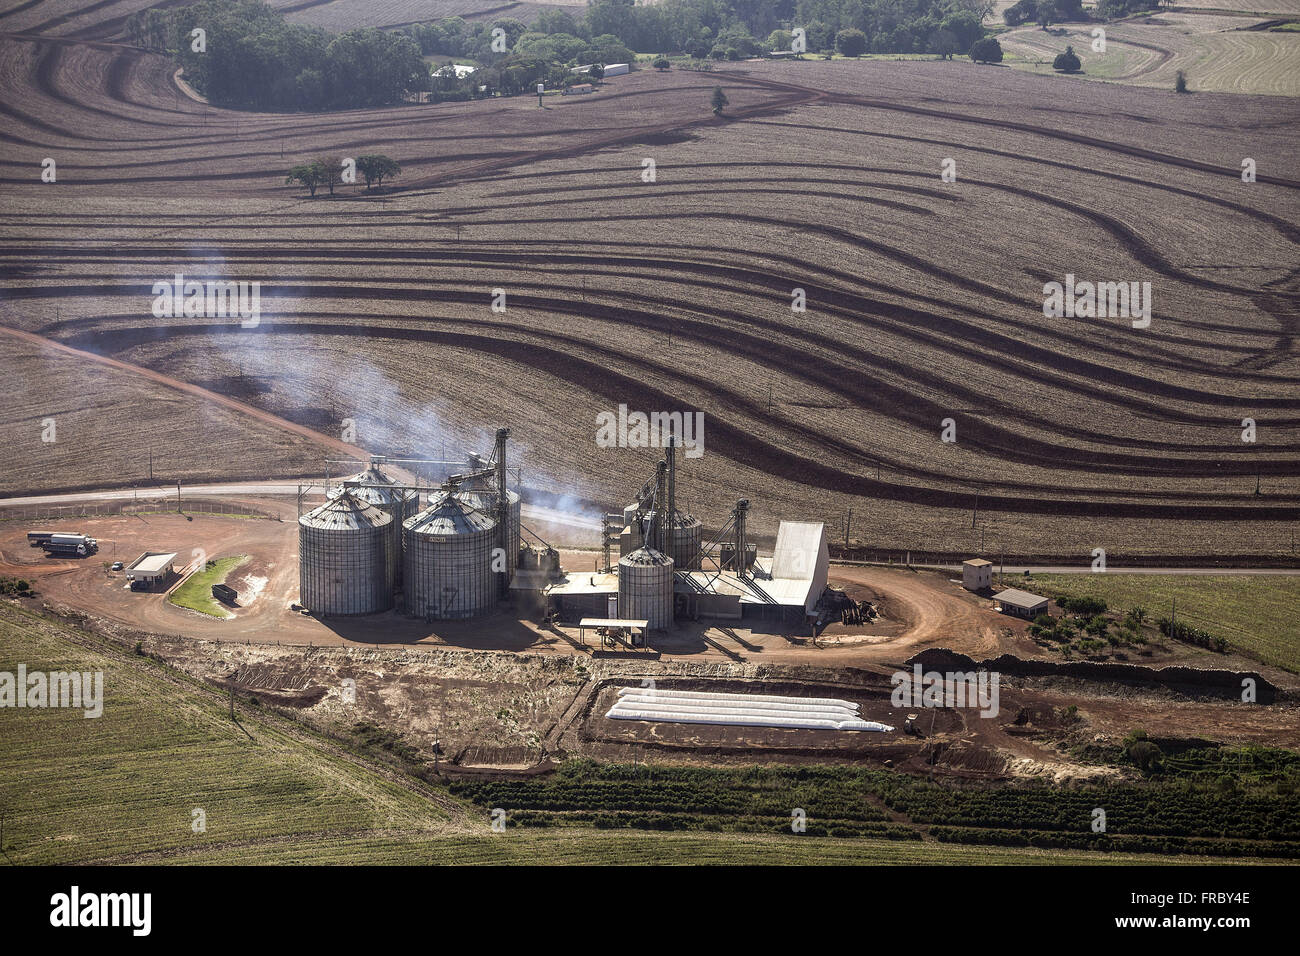 Aerial view of rural property with wheat plantation and silos - Stock Image